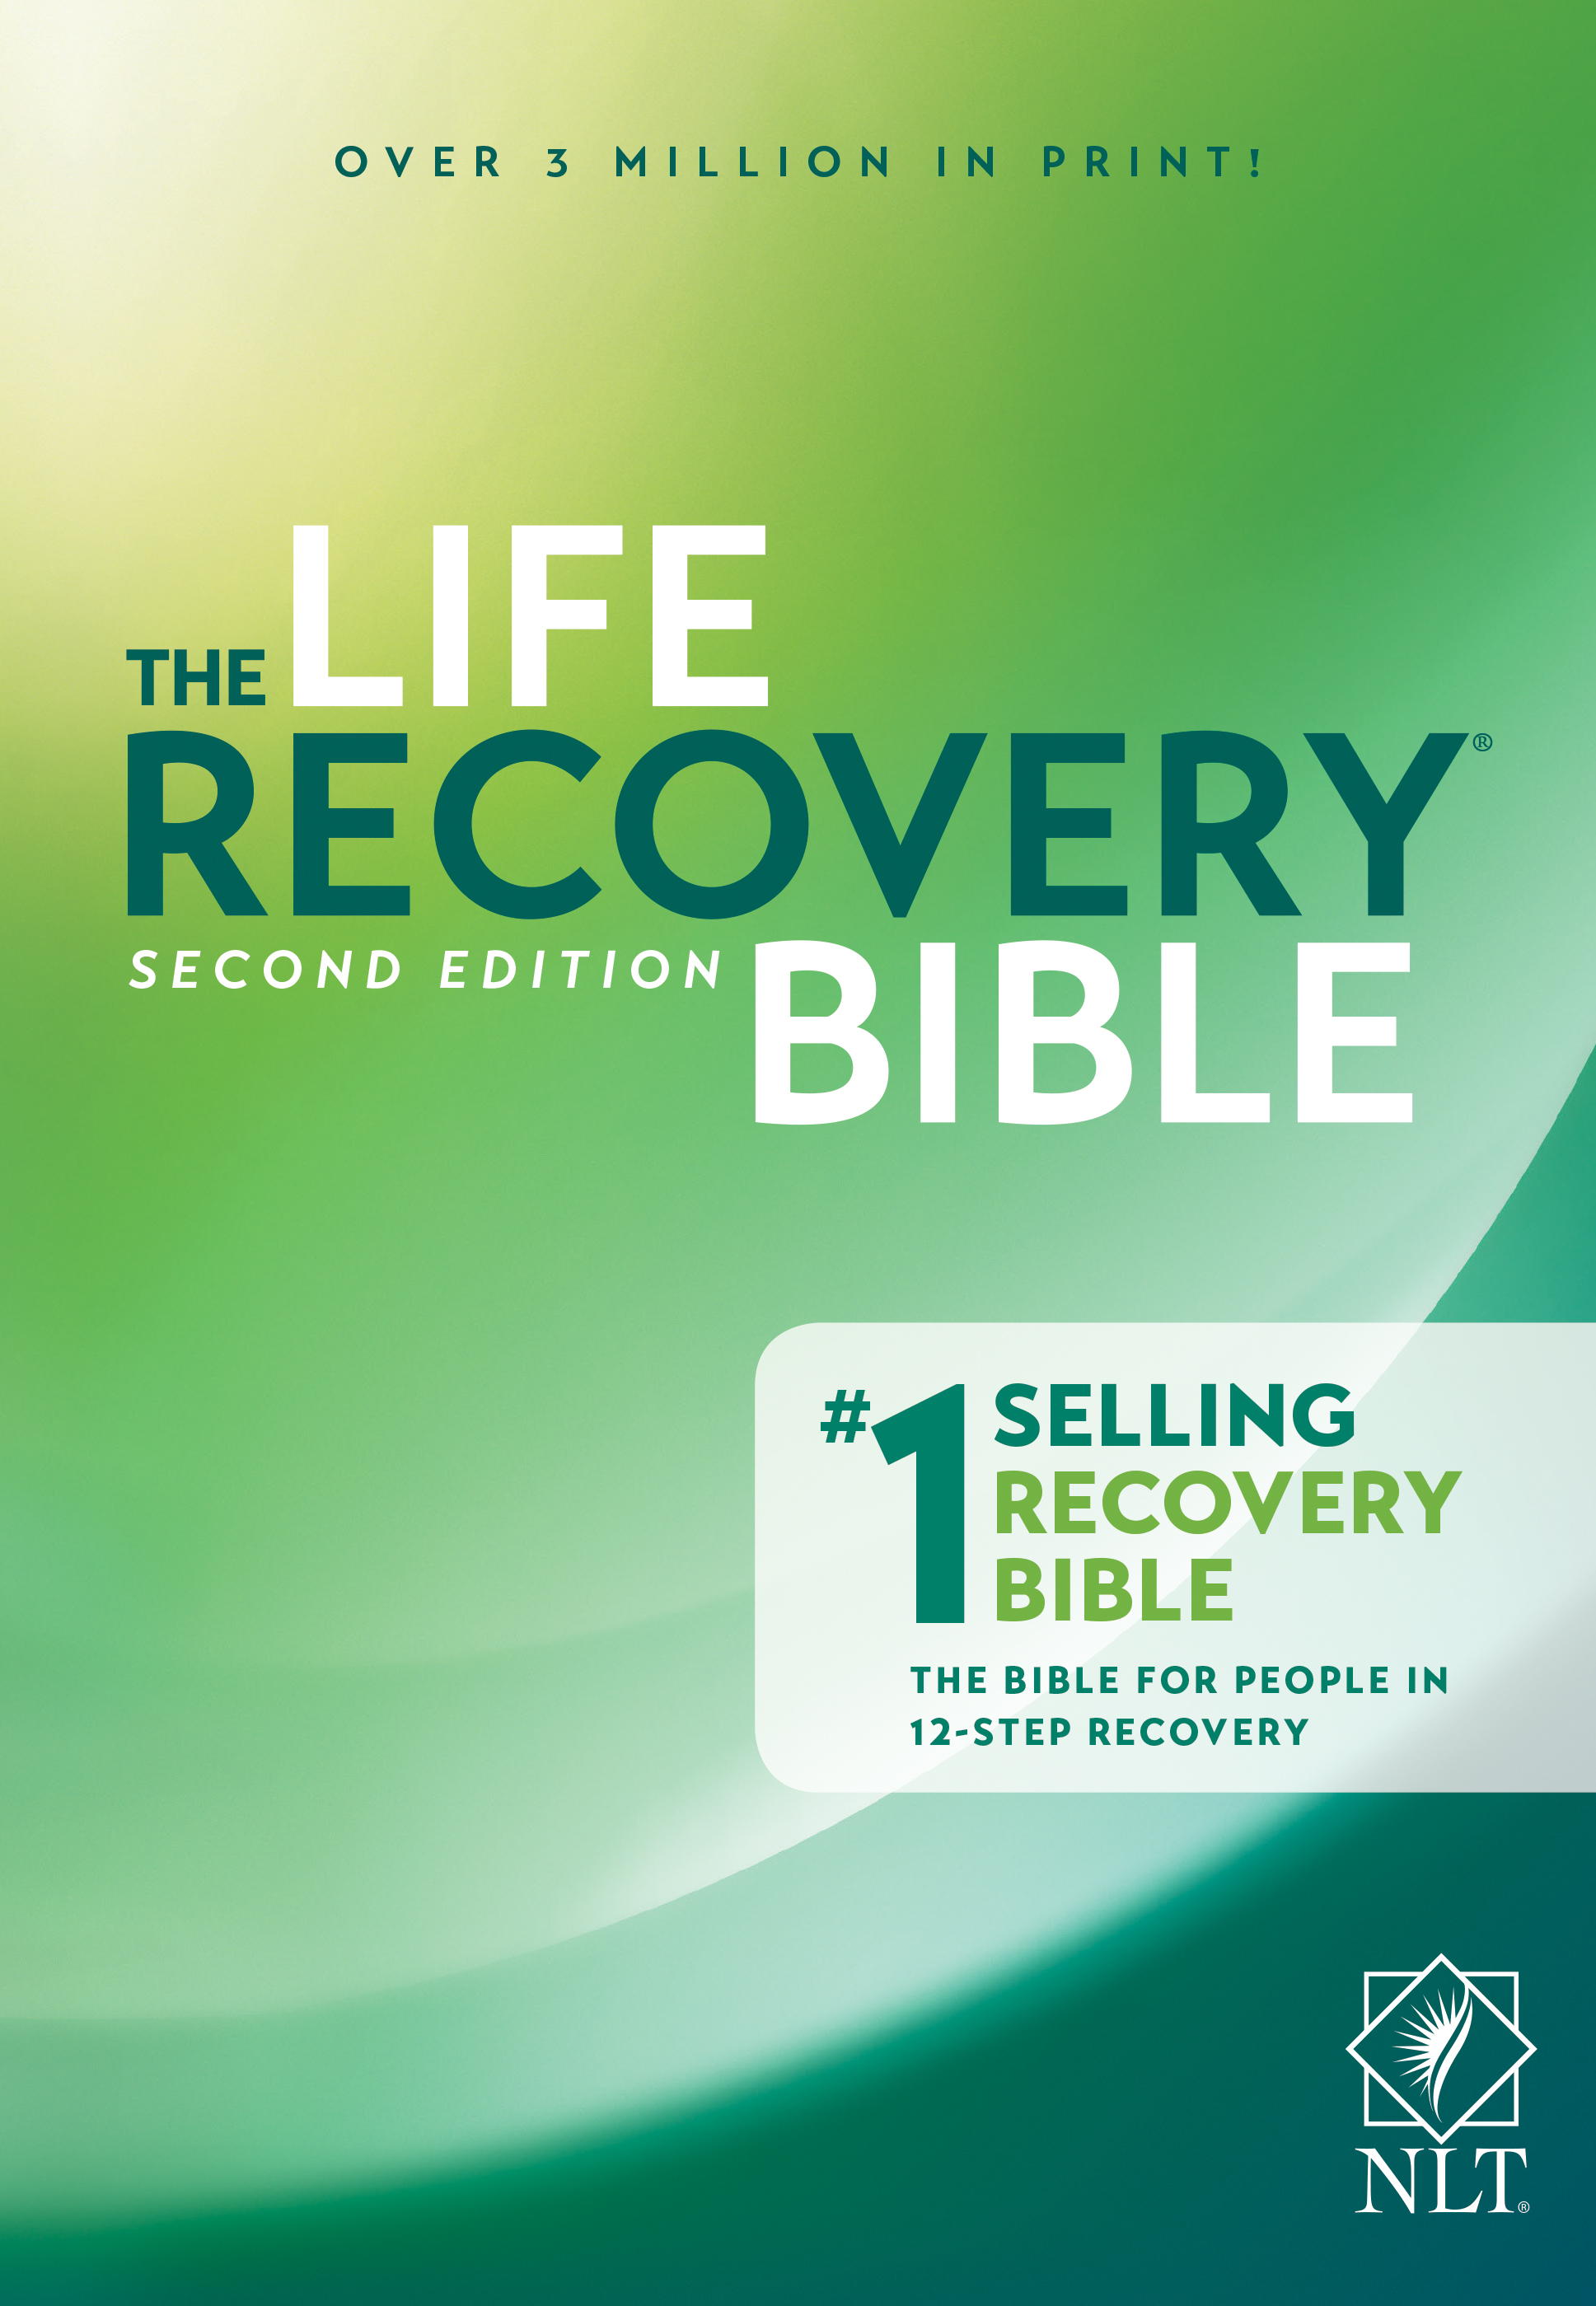 Tyndale Nlt Life Recovery Bible Second Edition